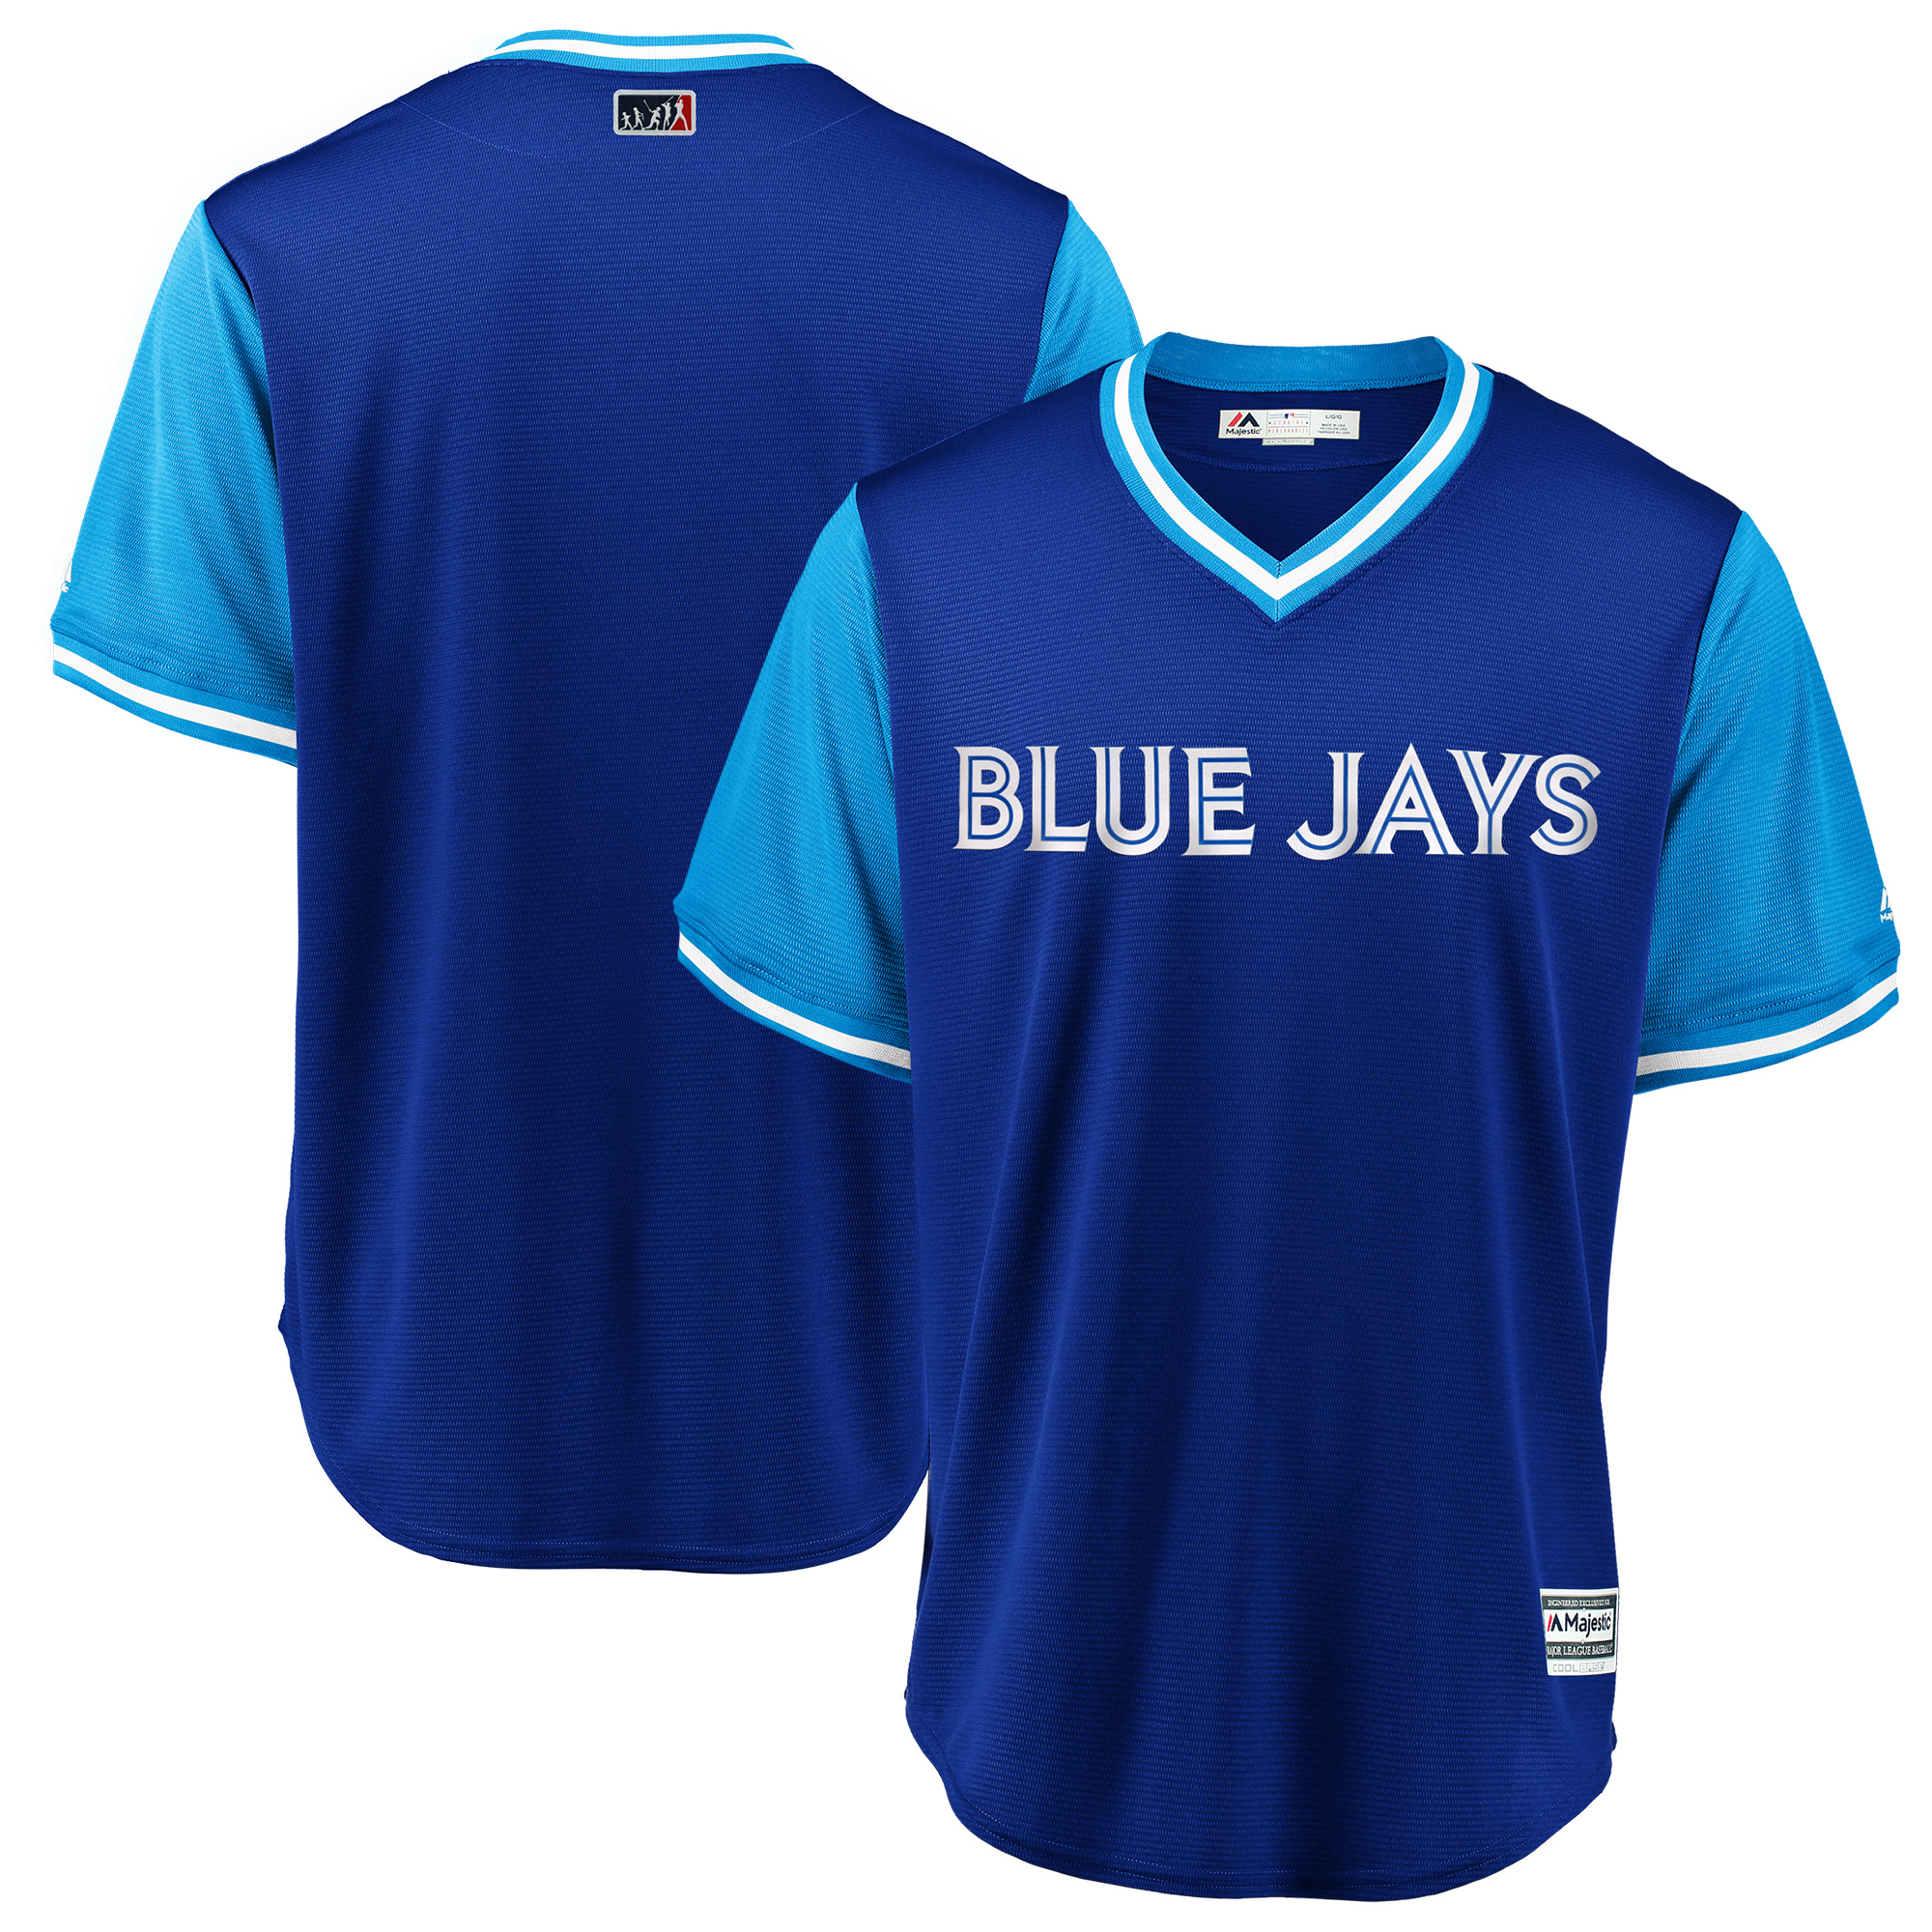 Toronto Blue Jays Majestic 2018 Players' Weekend Team Jersey - Royal/Light Blue